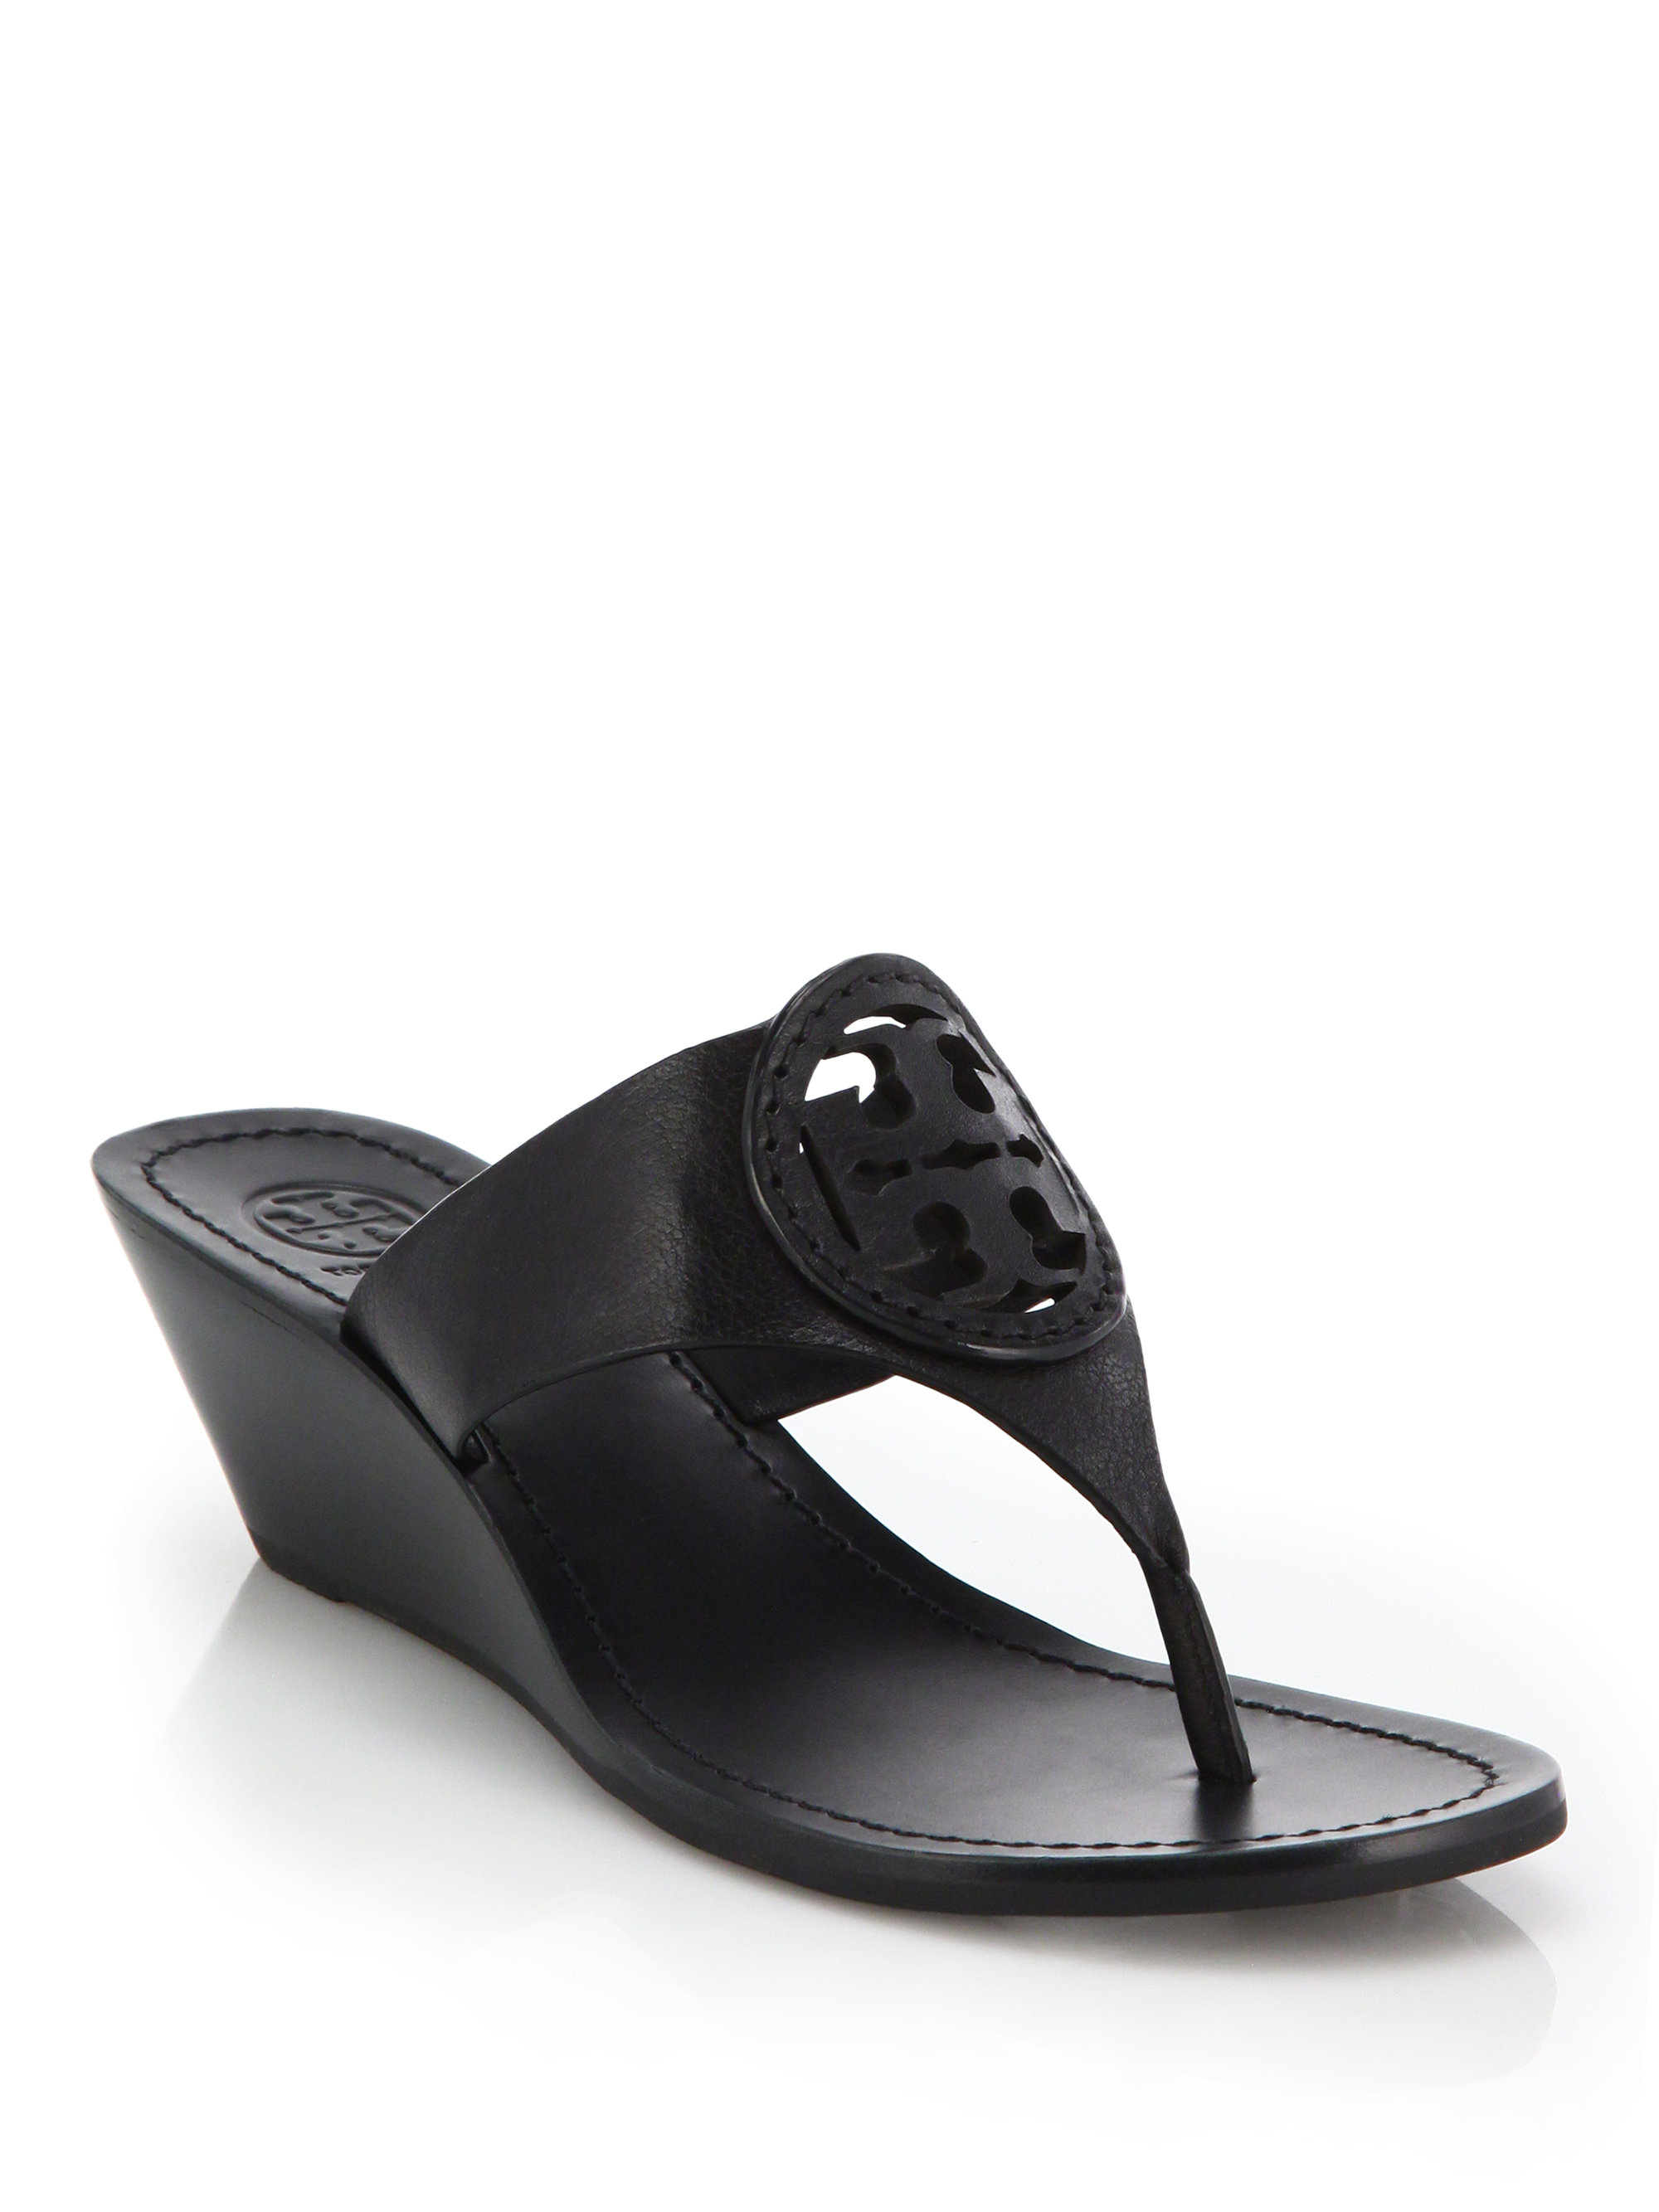 aba4f8f75 Lyst - Tory Burch Louisa Leather Thong Wedge Sandals in Black